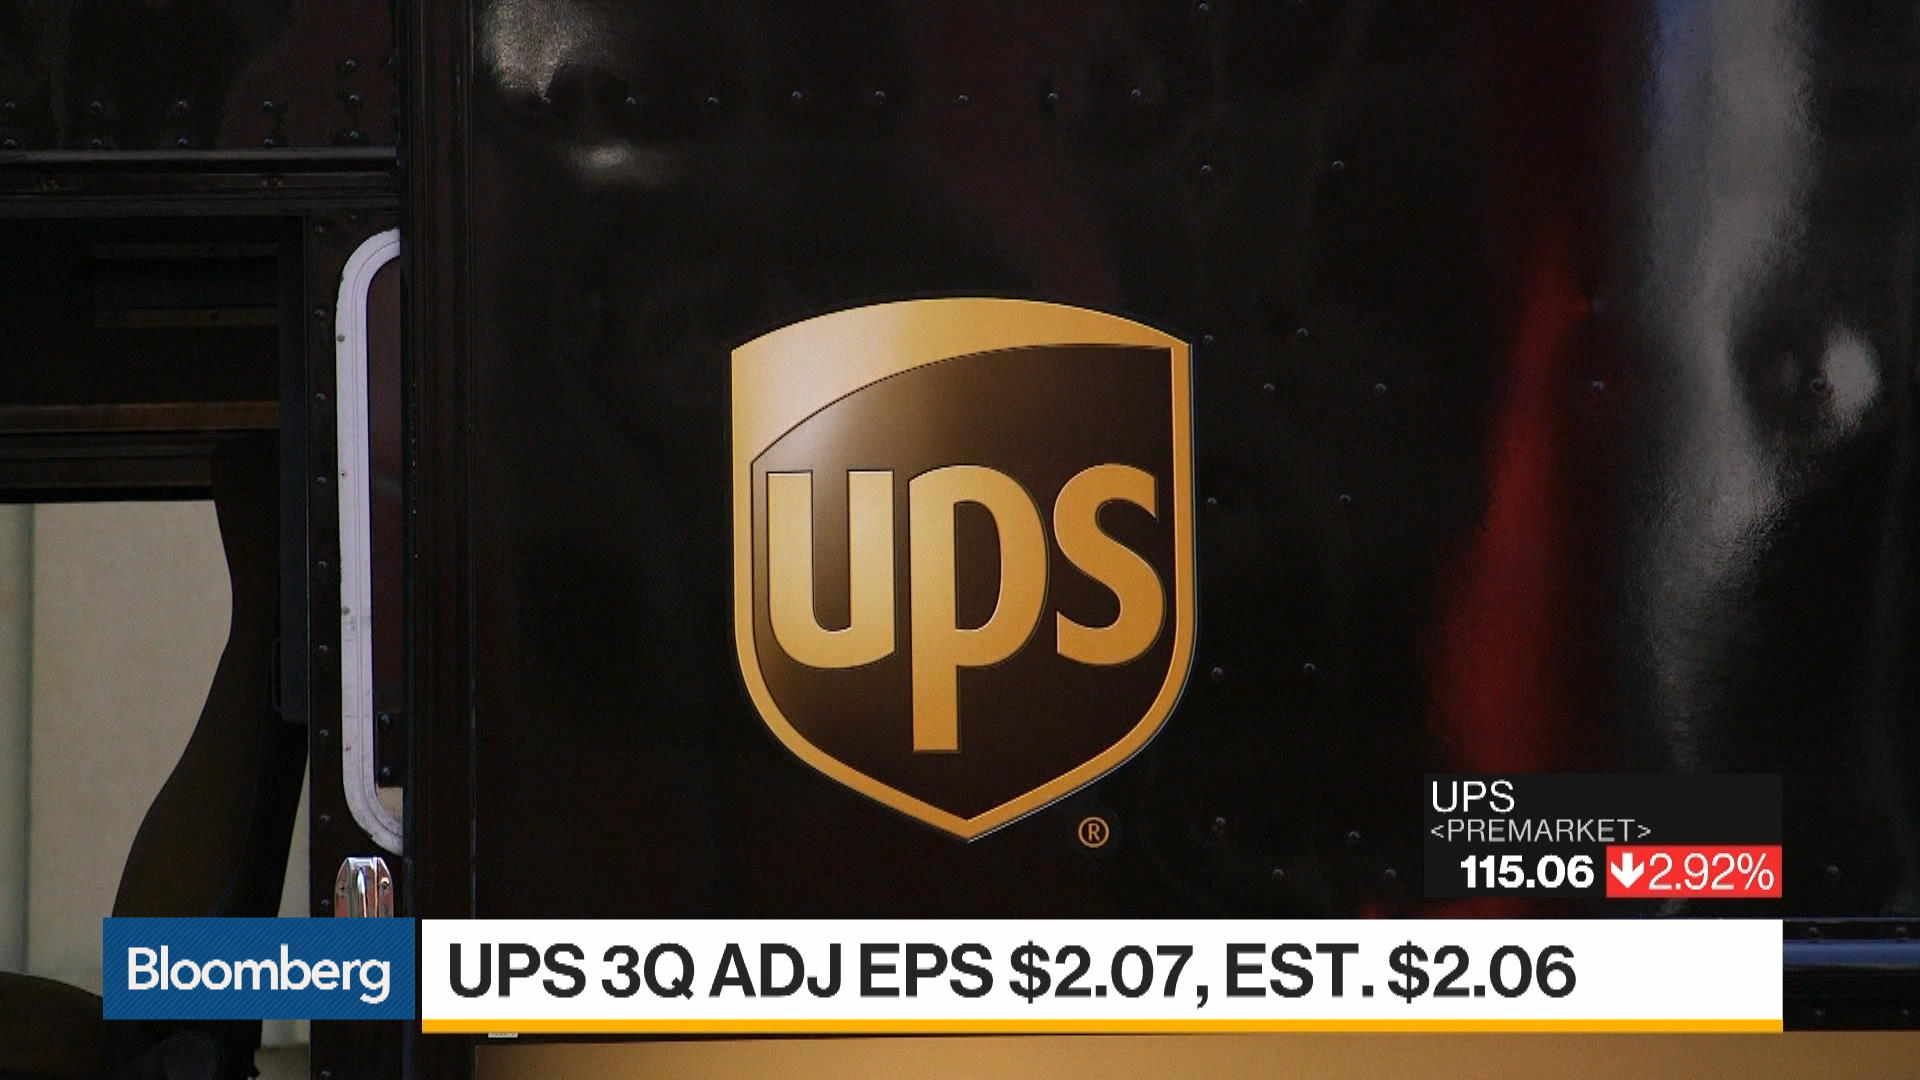 Earnings: UPS Beats on 3Q Adjusted EPS, COO Barber to Retire